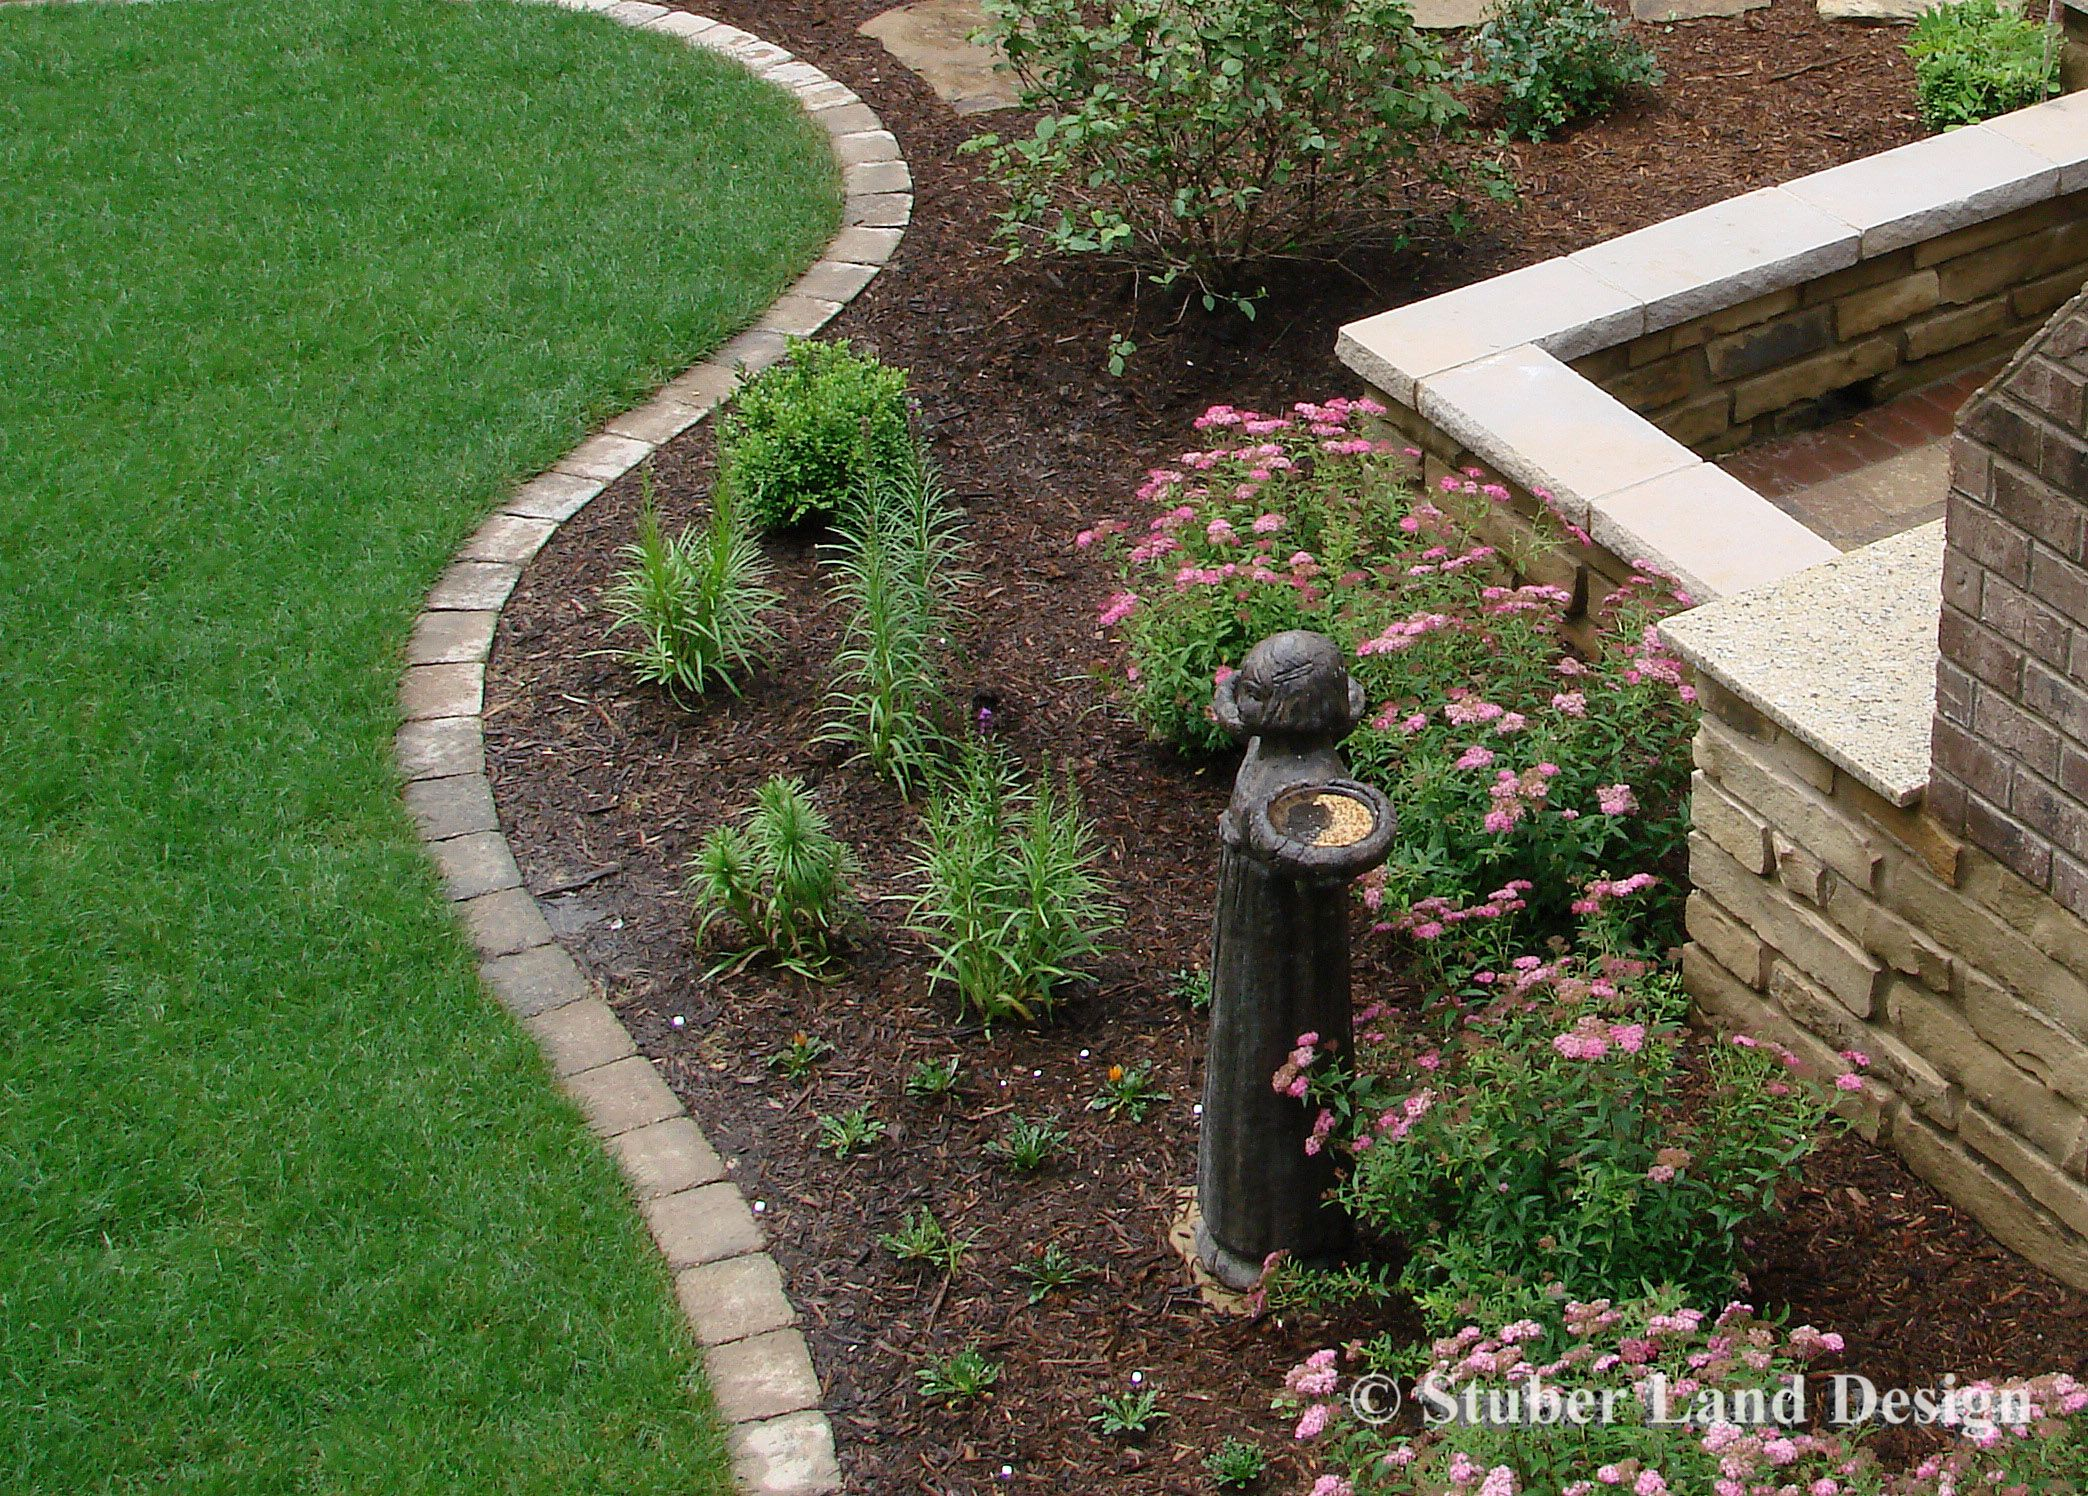 Paver edging creates a good clean line to transition from